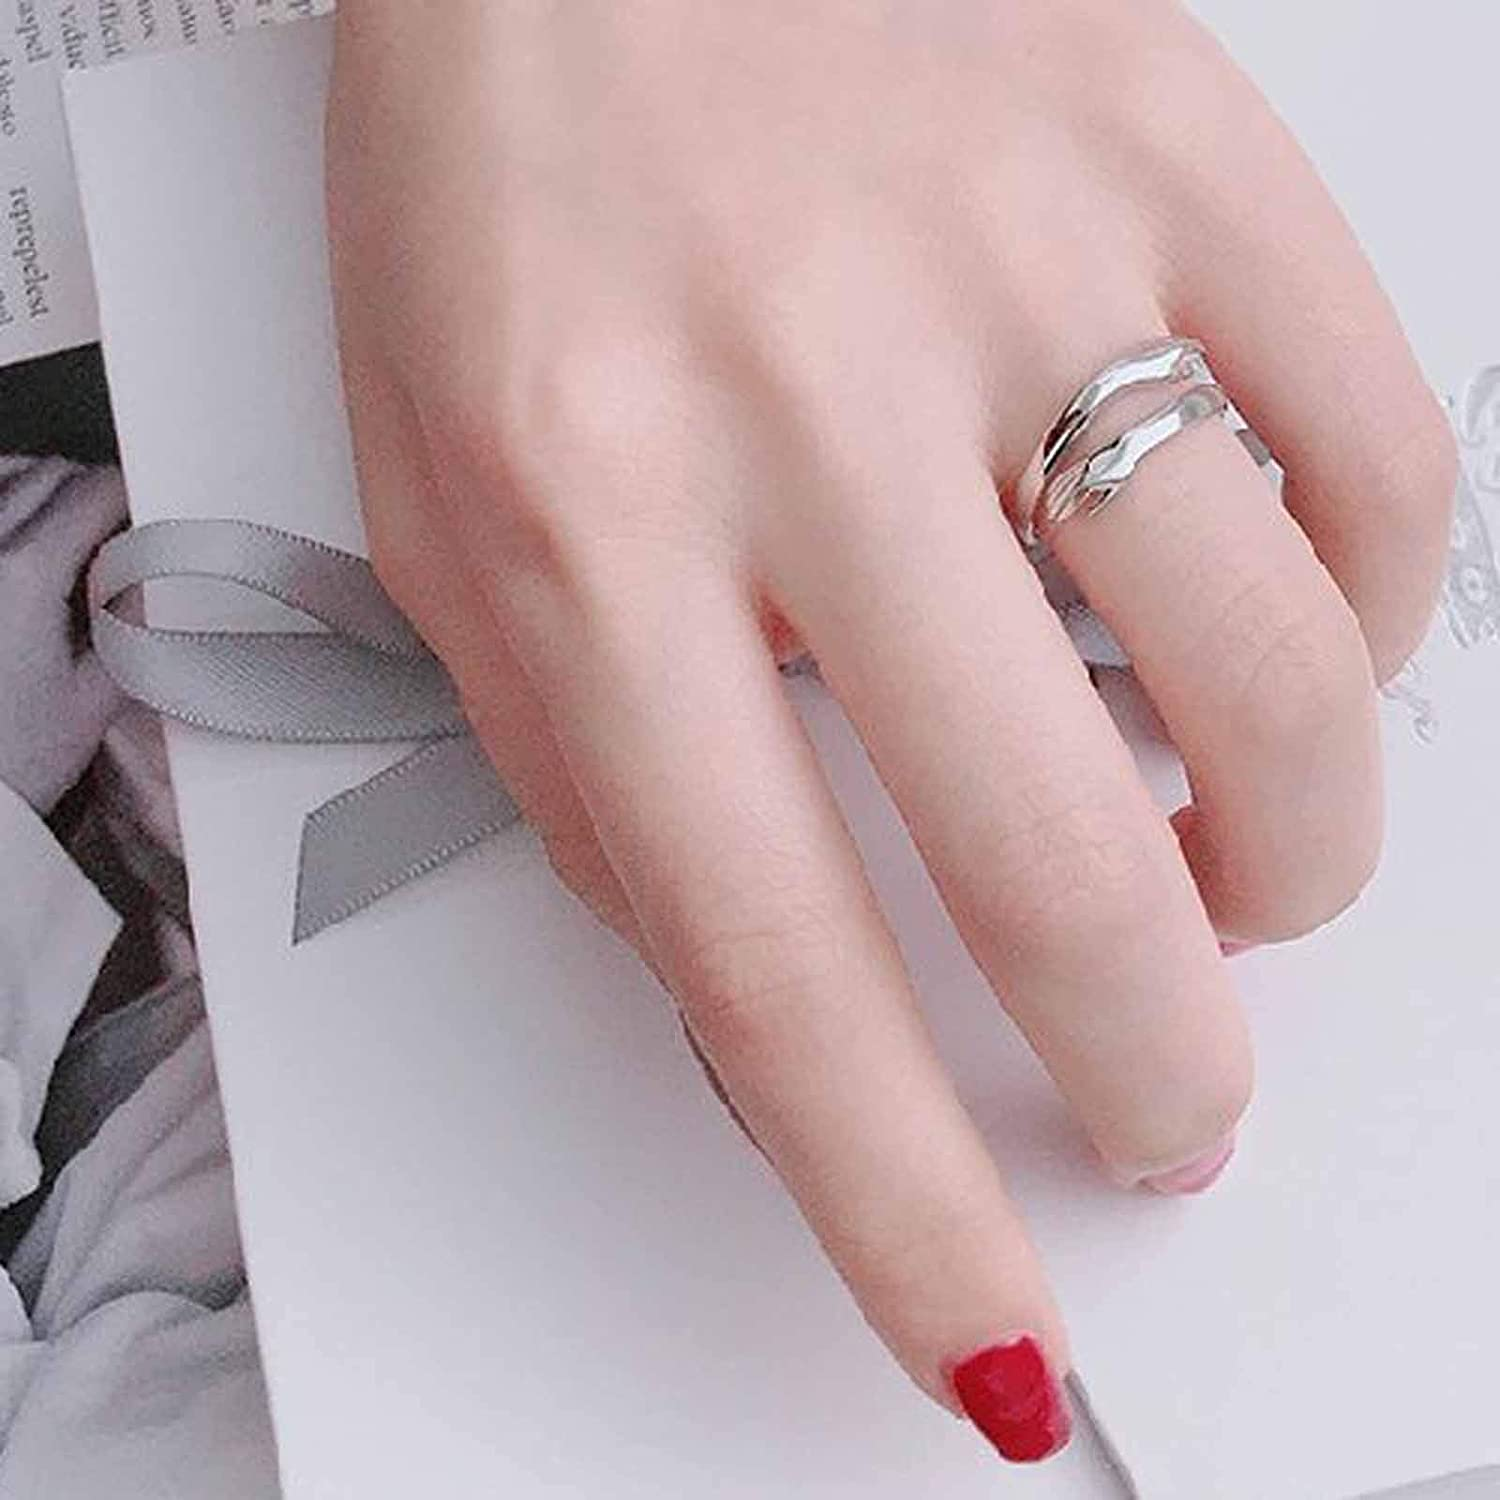 Rings for Women Girls, Rhinestone Engagement Rings Diamond Exquisite Rings Wedding Ring Jewelry Gifts for Her